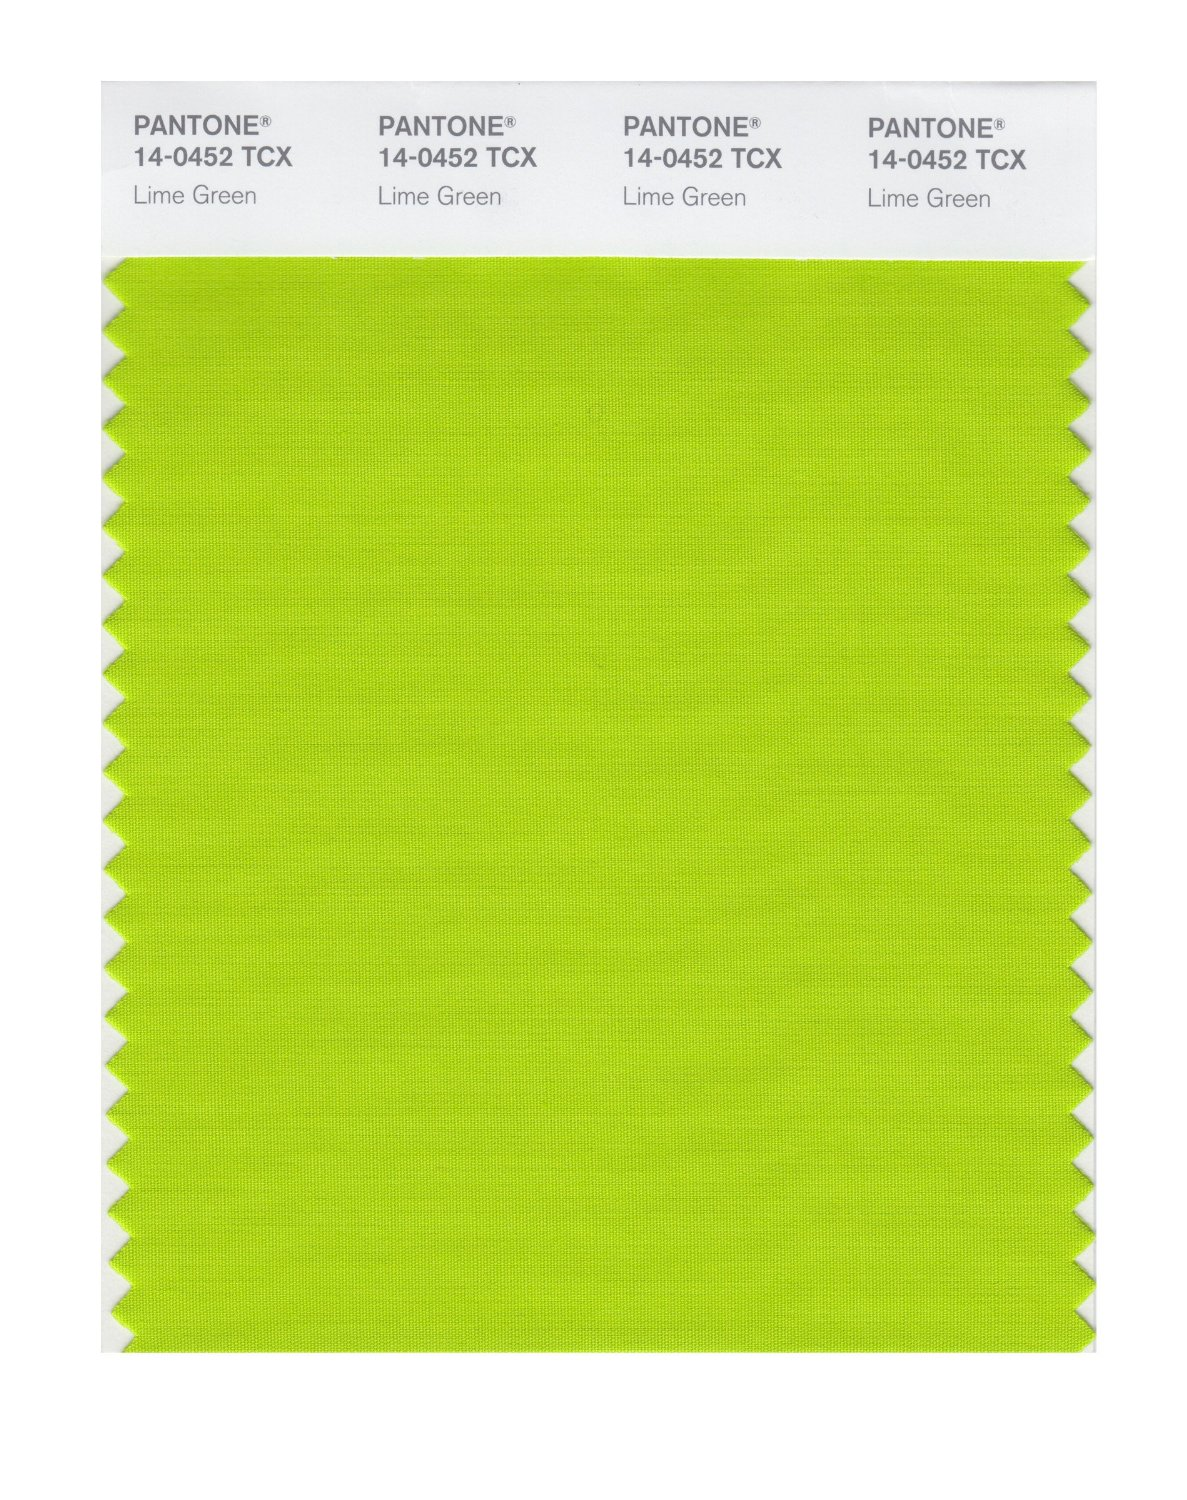 Pantone Smart Swatch 14-0452 Lime Green